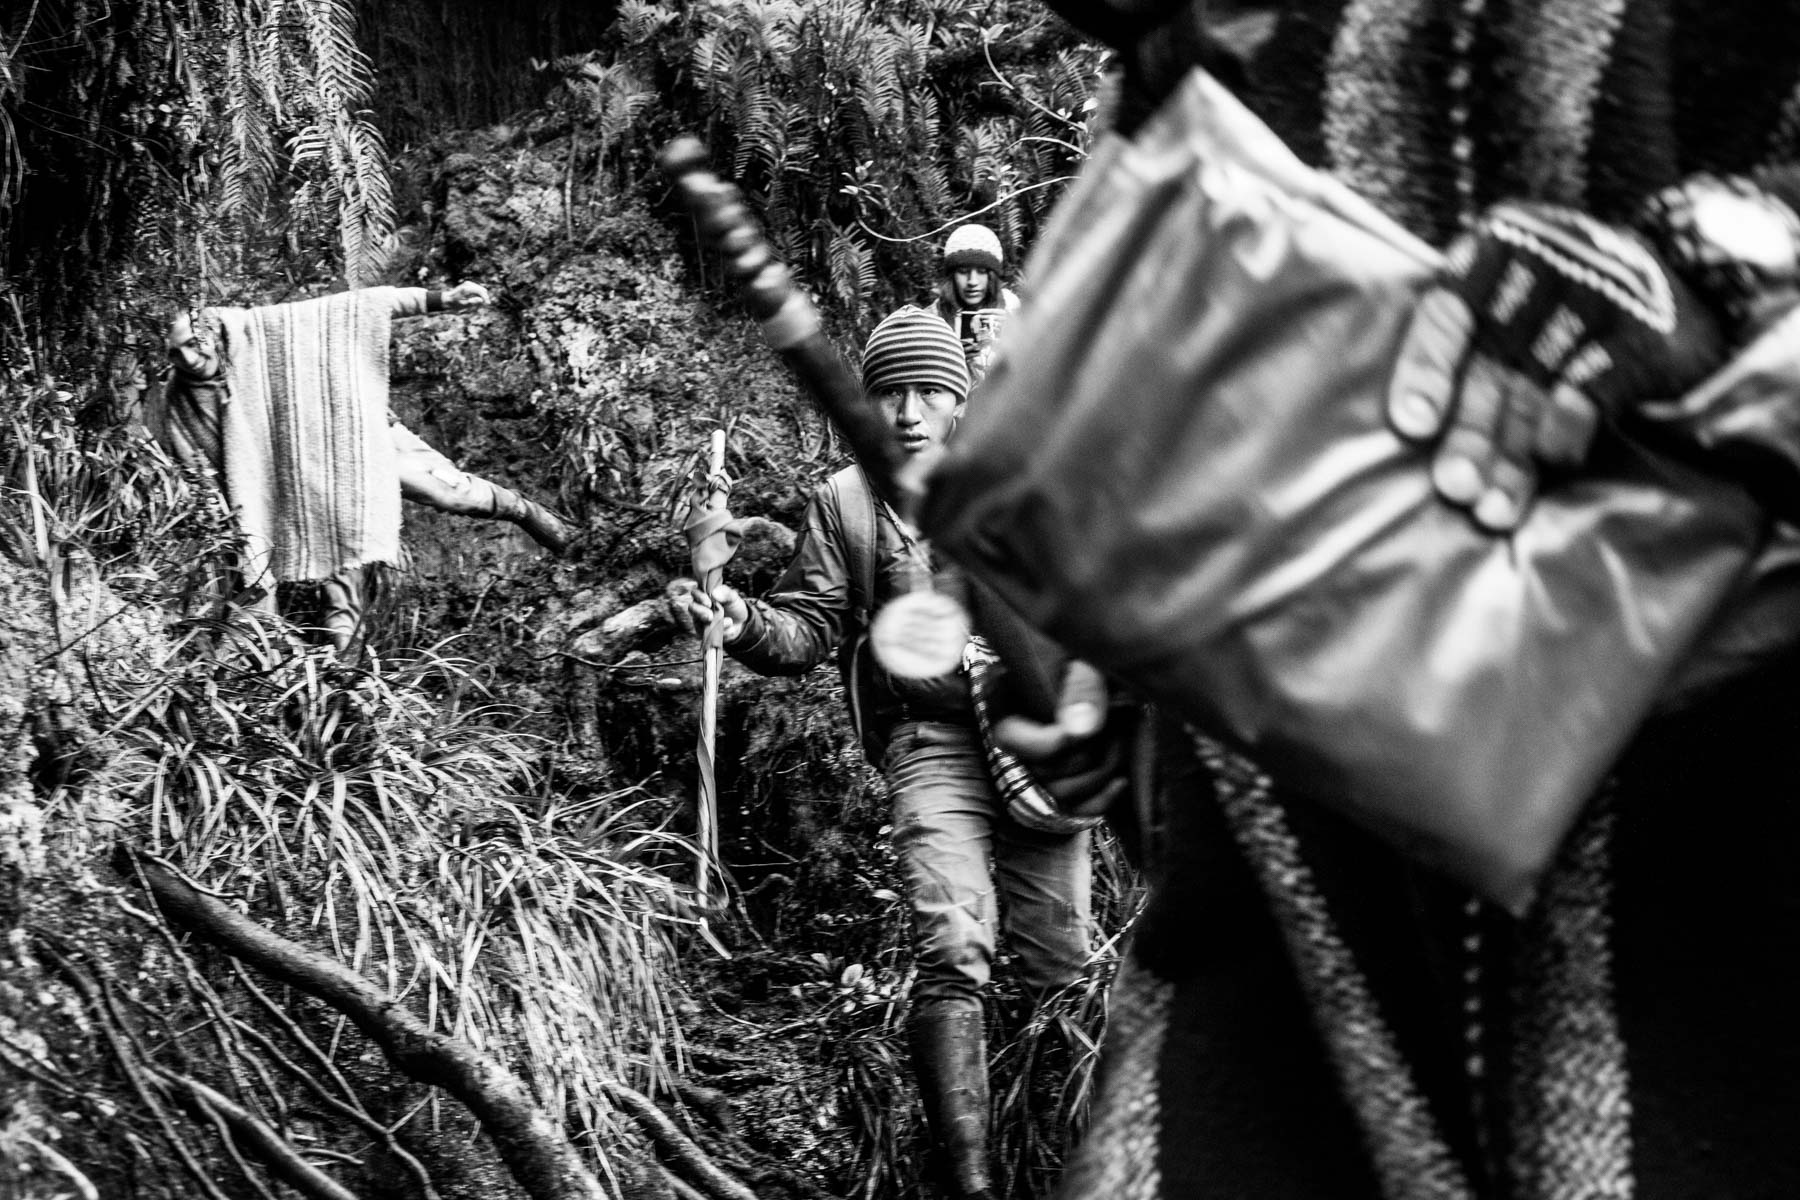 """People from the Nasa indigenous community climb a sacred mountain in the Páramo de Pisnos to make an offer as part of the cleansing ritual of the 'Khabu fxizehnxi' ('Refreshing of the Batons""""), one of the five main rituals of the Nasa indigenous people of the Cauca region in Colombia. Cauca region, Colombia, January 2019."""